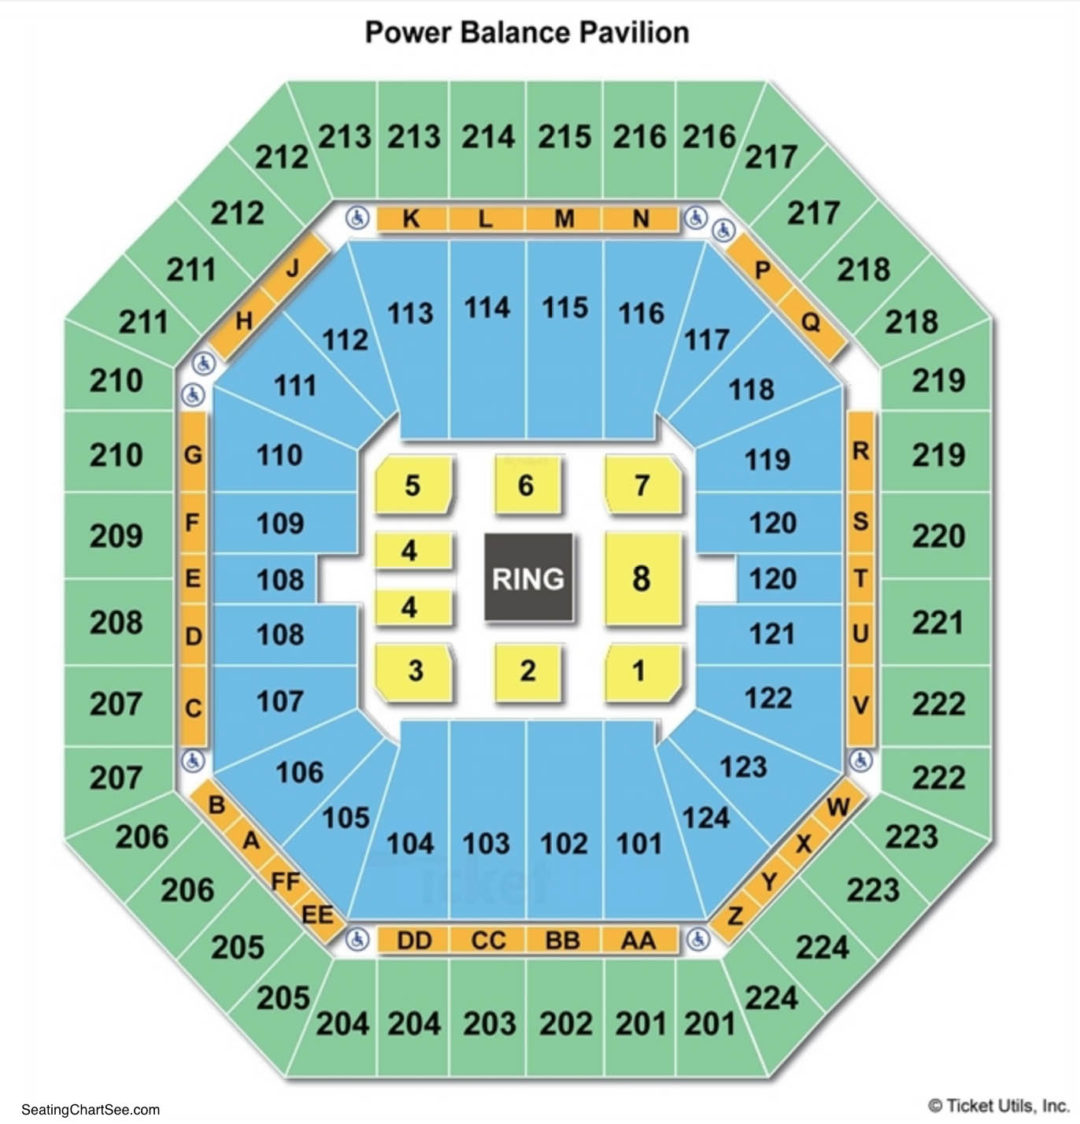 Sleep train arena seating chart seating charts tickets